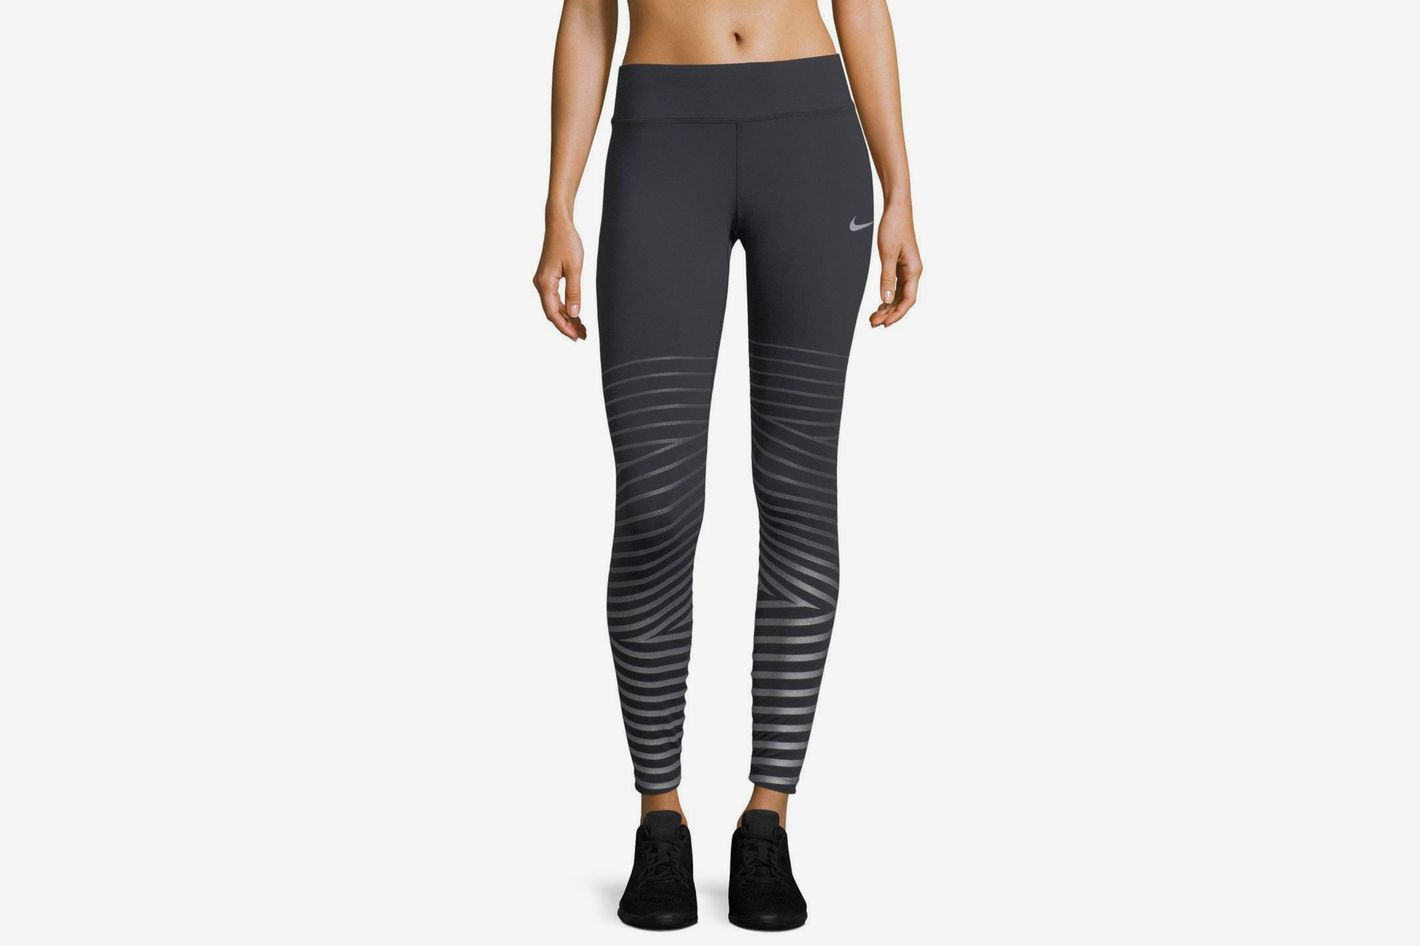 Nike Epic Lux Flash Performance Leggings